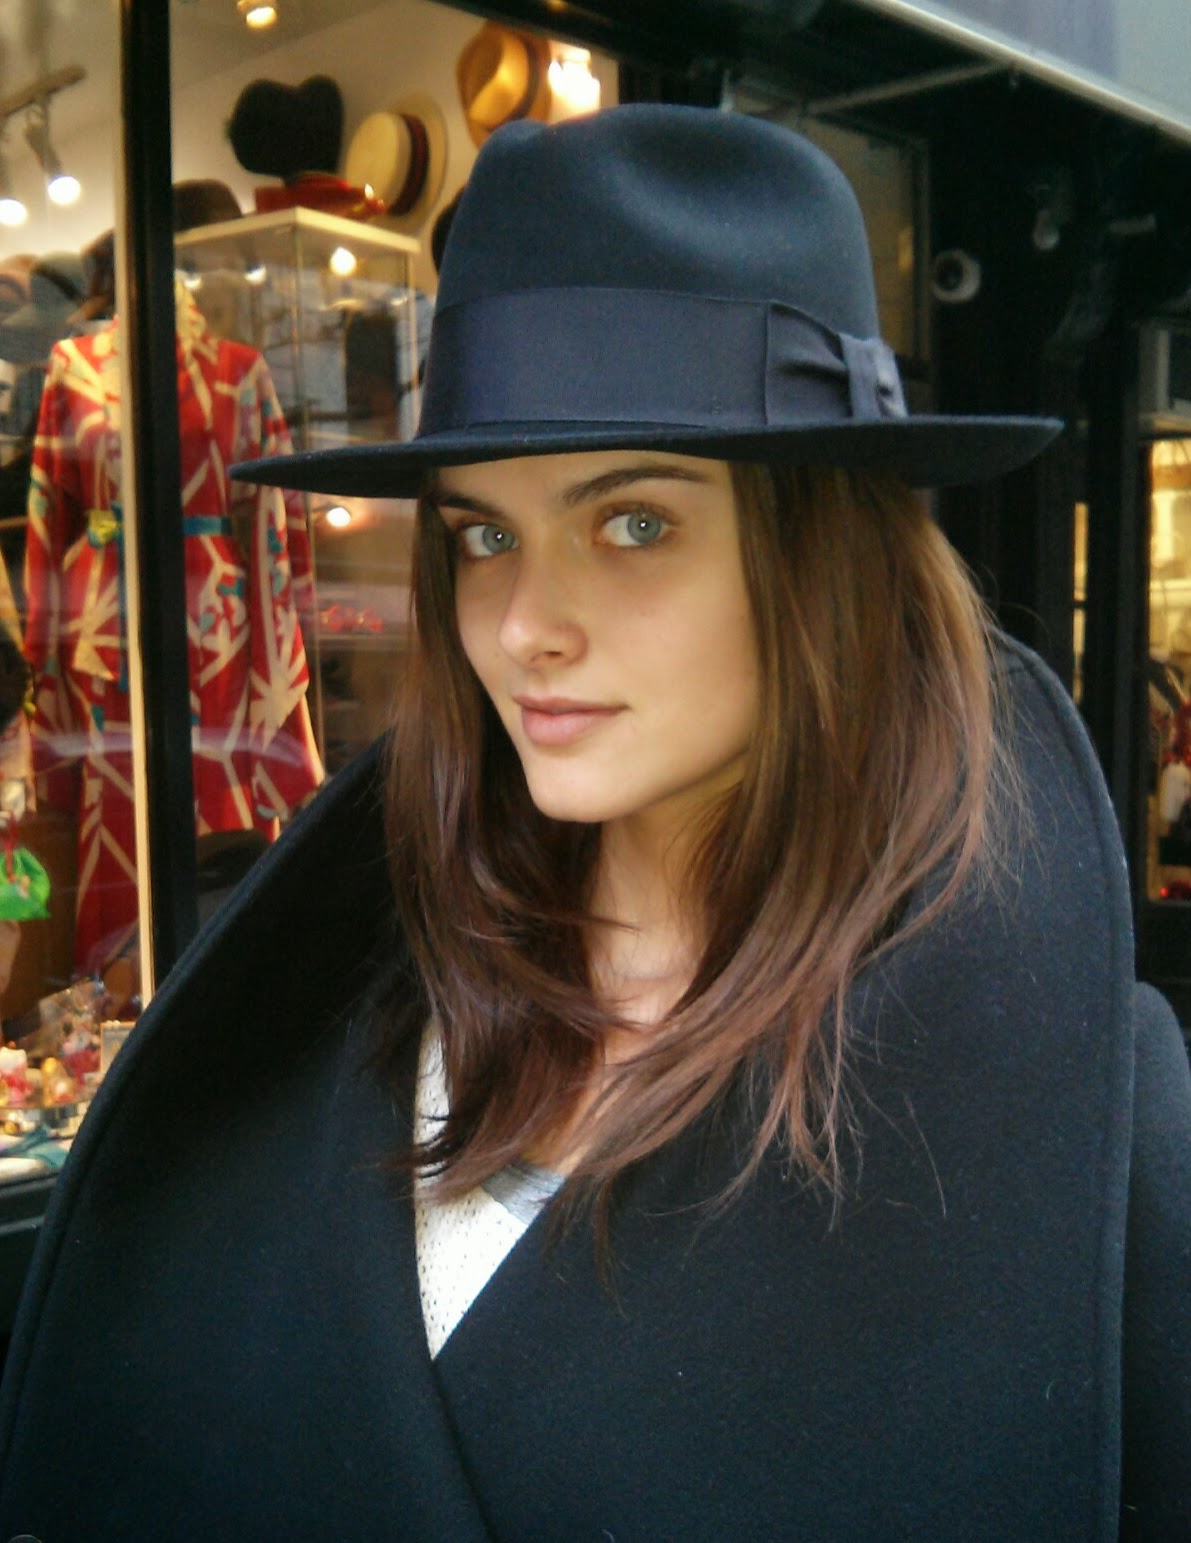 The Hat House   Custom Fedora Hats for women at The Hat House New York bffcbd1a415d